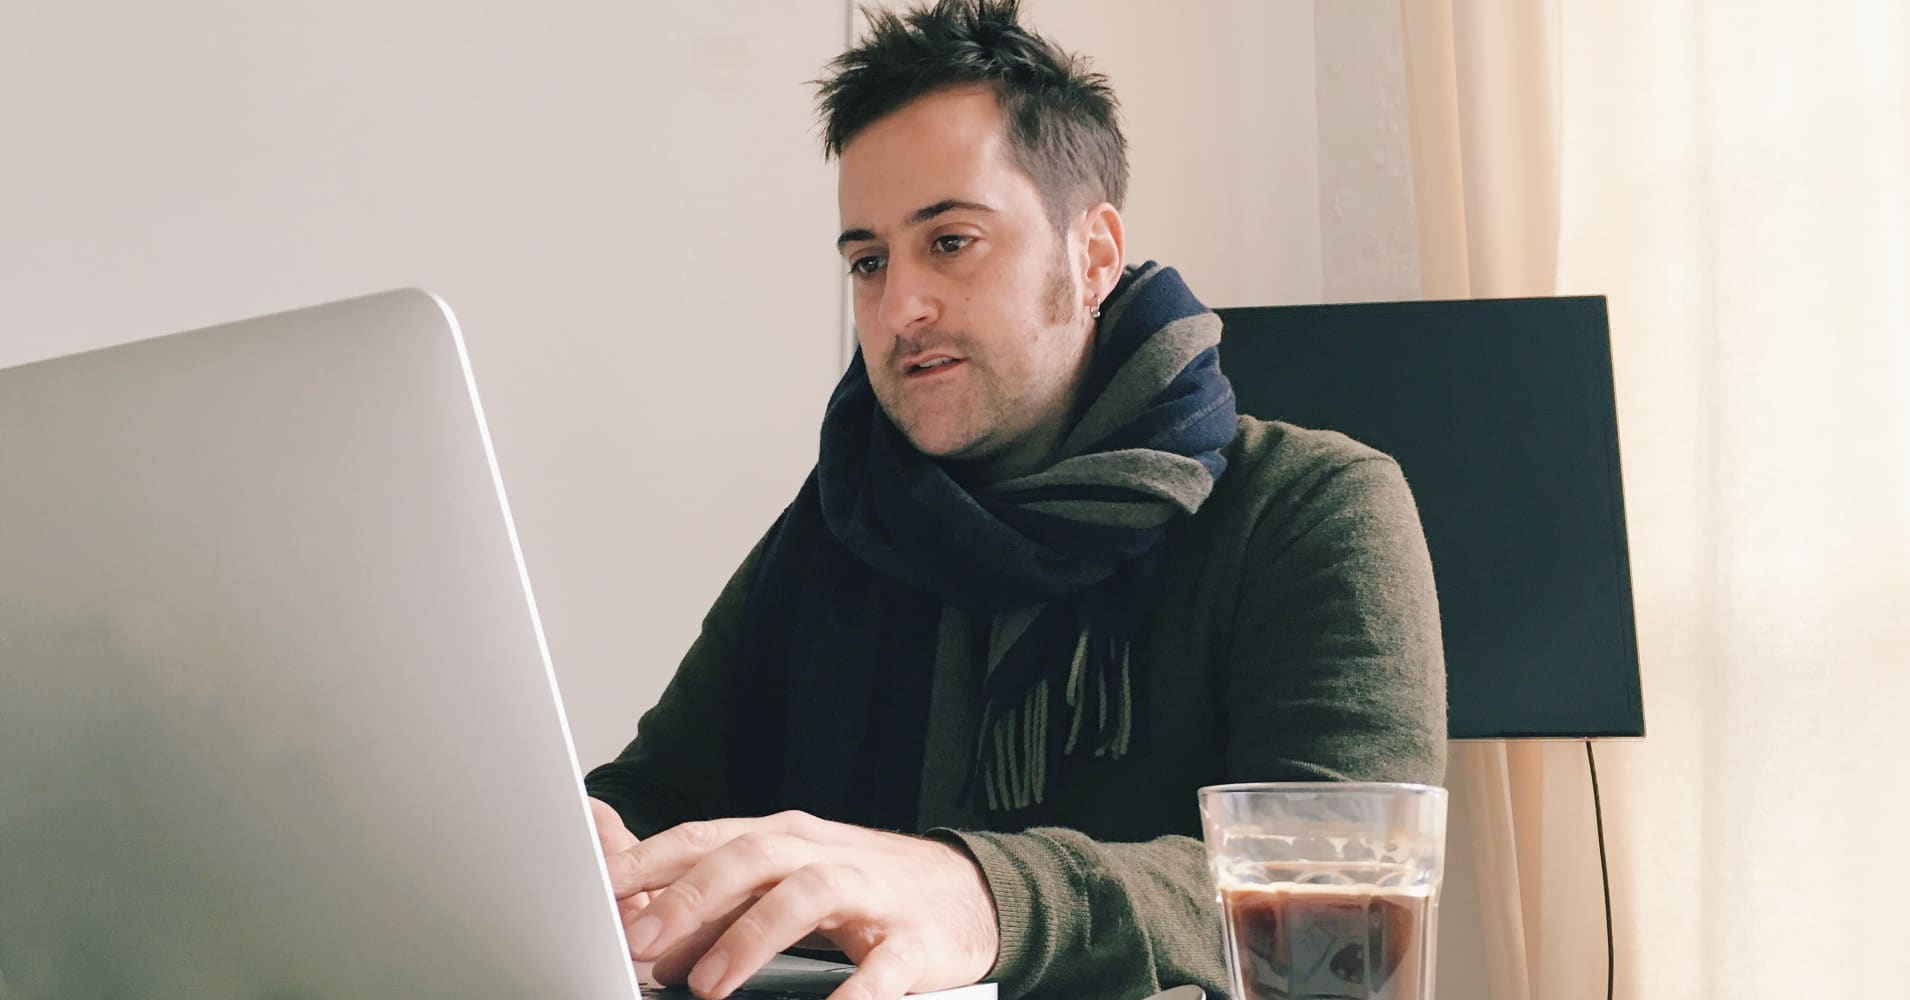 Man uses laptop to file his income taxes.